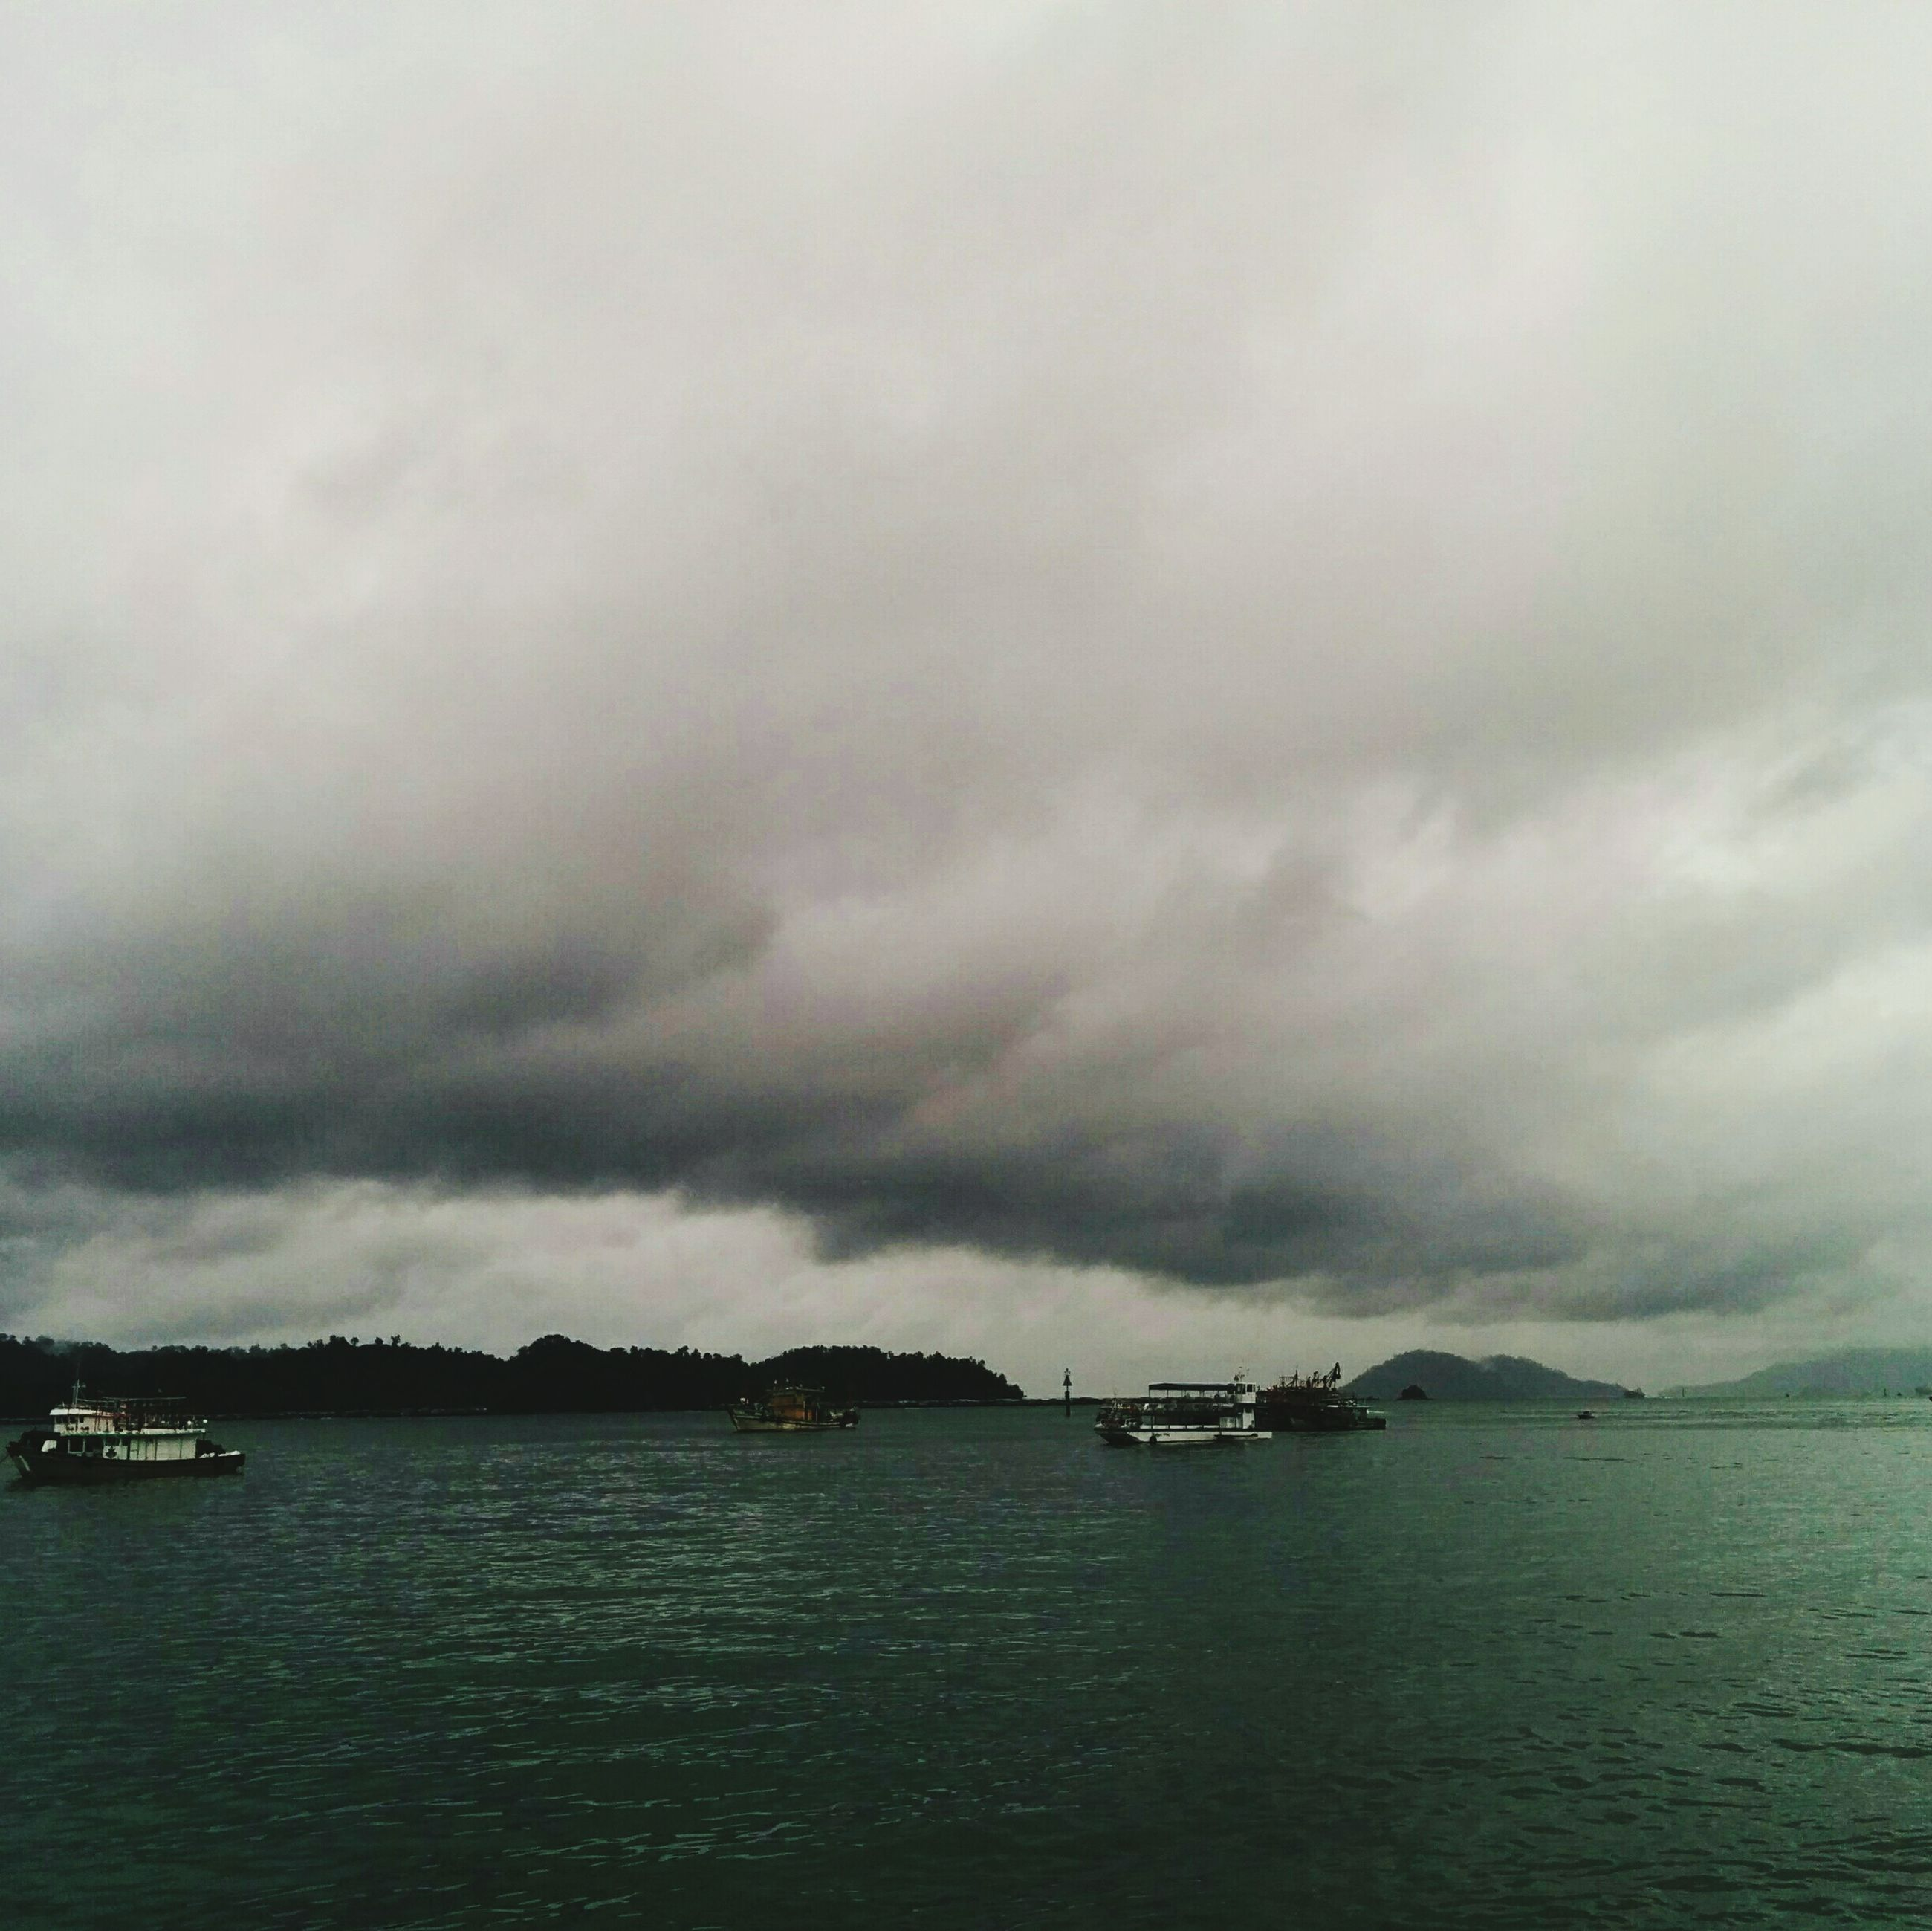 cloud - sky, sky, water, nature, beauty in nature, nautical vessel, scenics, sea, tranquility, outdoors, no people, waterfront, mode of transport, tranquil scene, storm cloud, rippled, day, built structure, sailing, architecture, building exterior, yacht, view into land